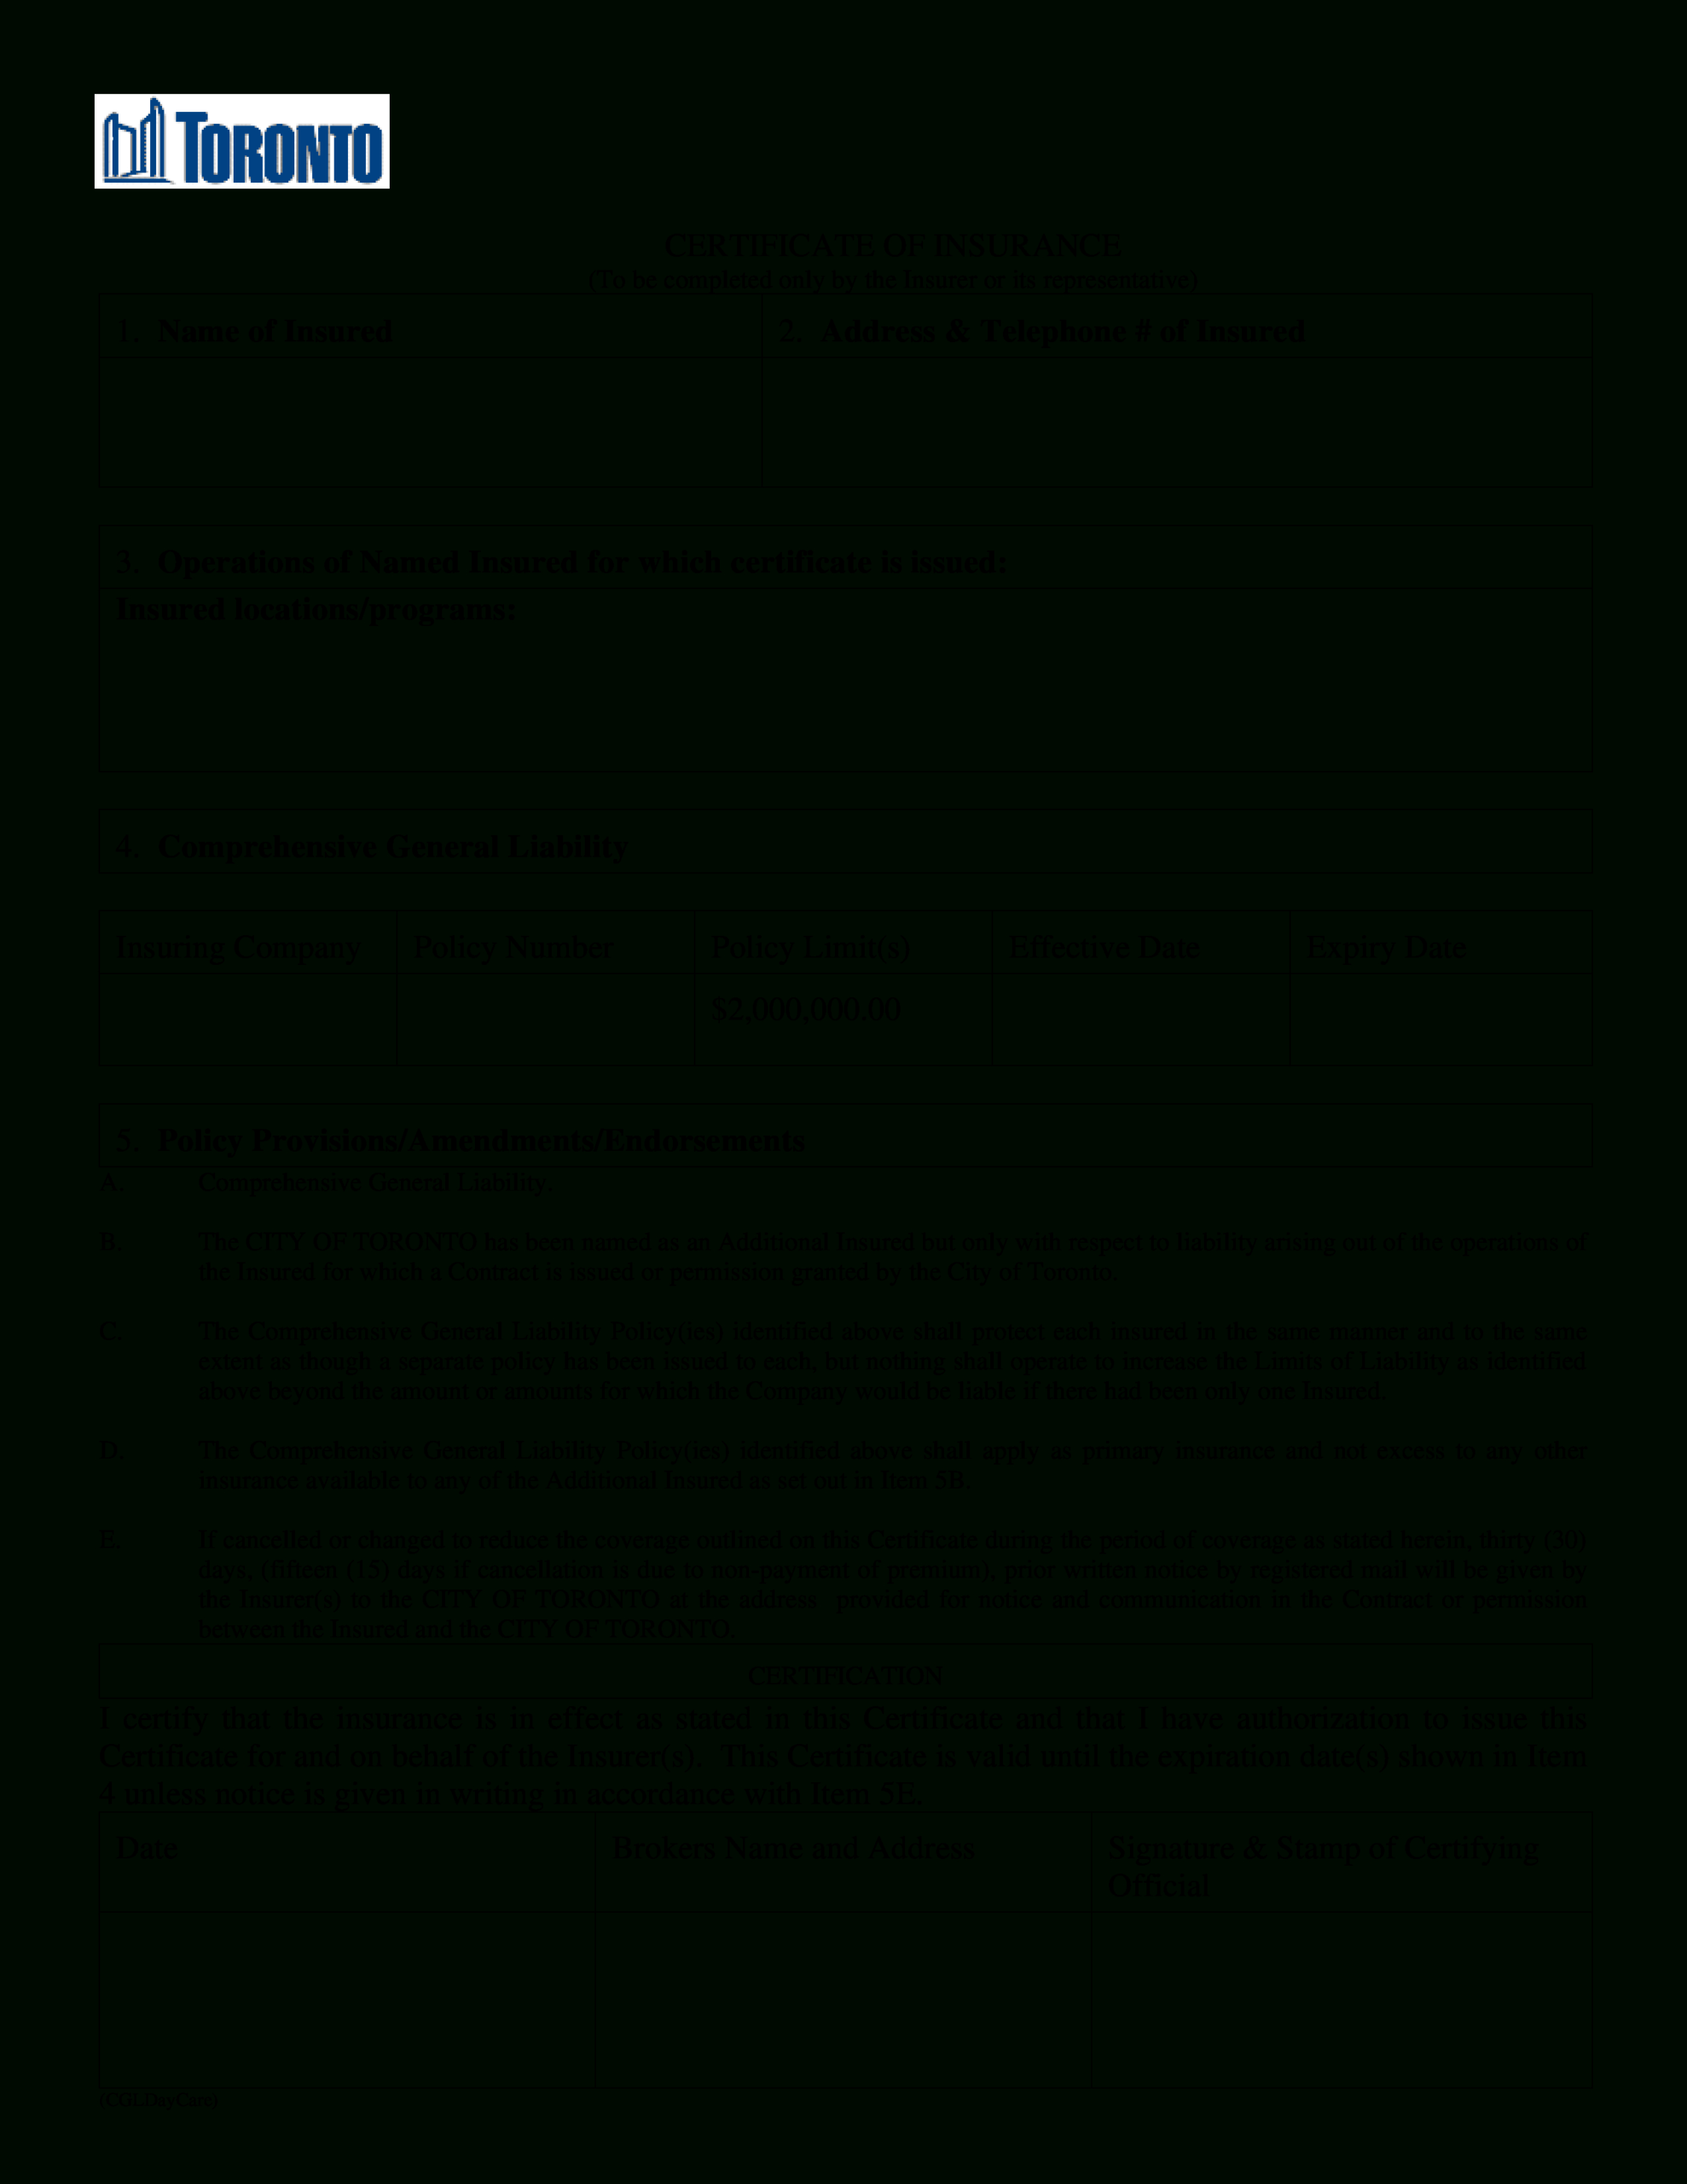 Blank Certificate Of Insurance | Templates At Inside Certificate Of Insurance Template